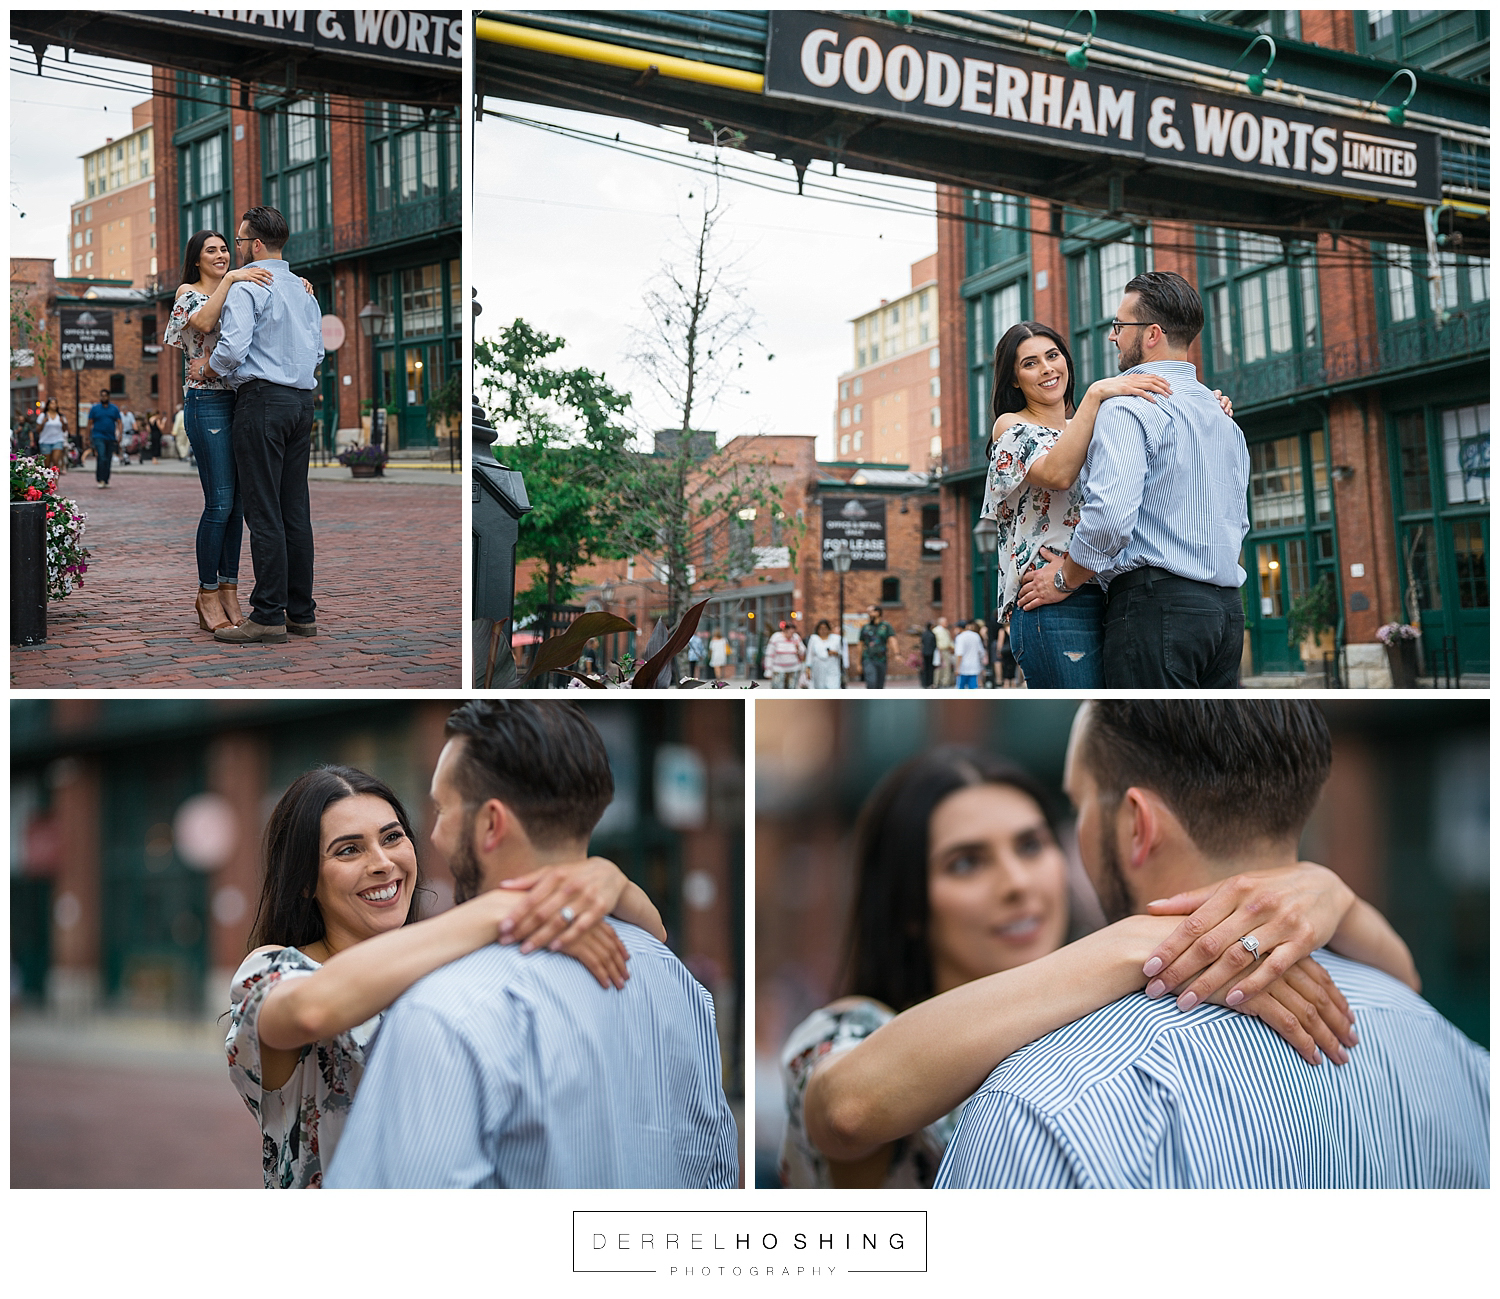 Distillery-District-Polson-Pier-Toronto-Engagement-Shoot-Wedding-Photographer-0005.jpg